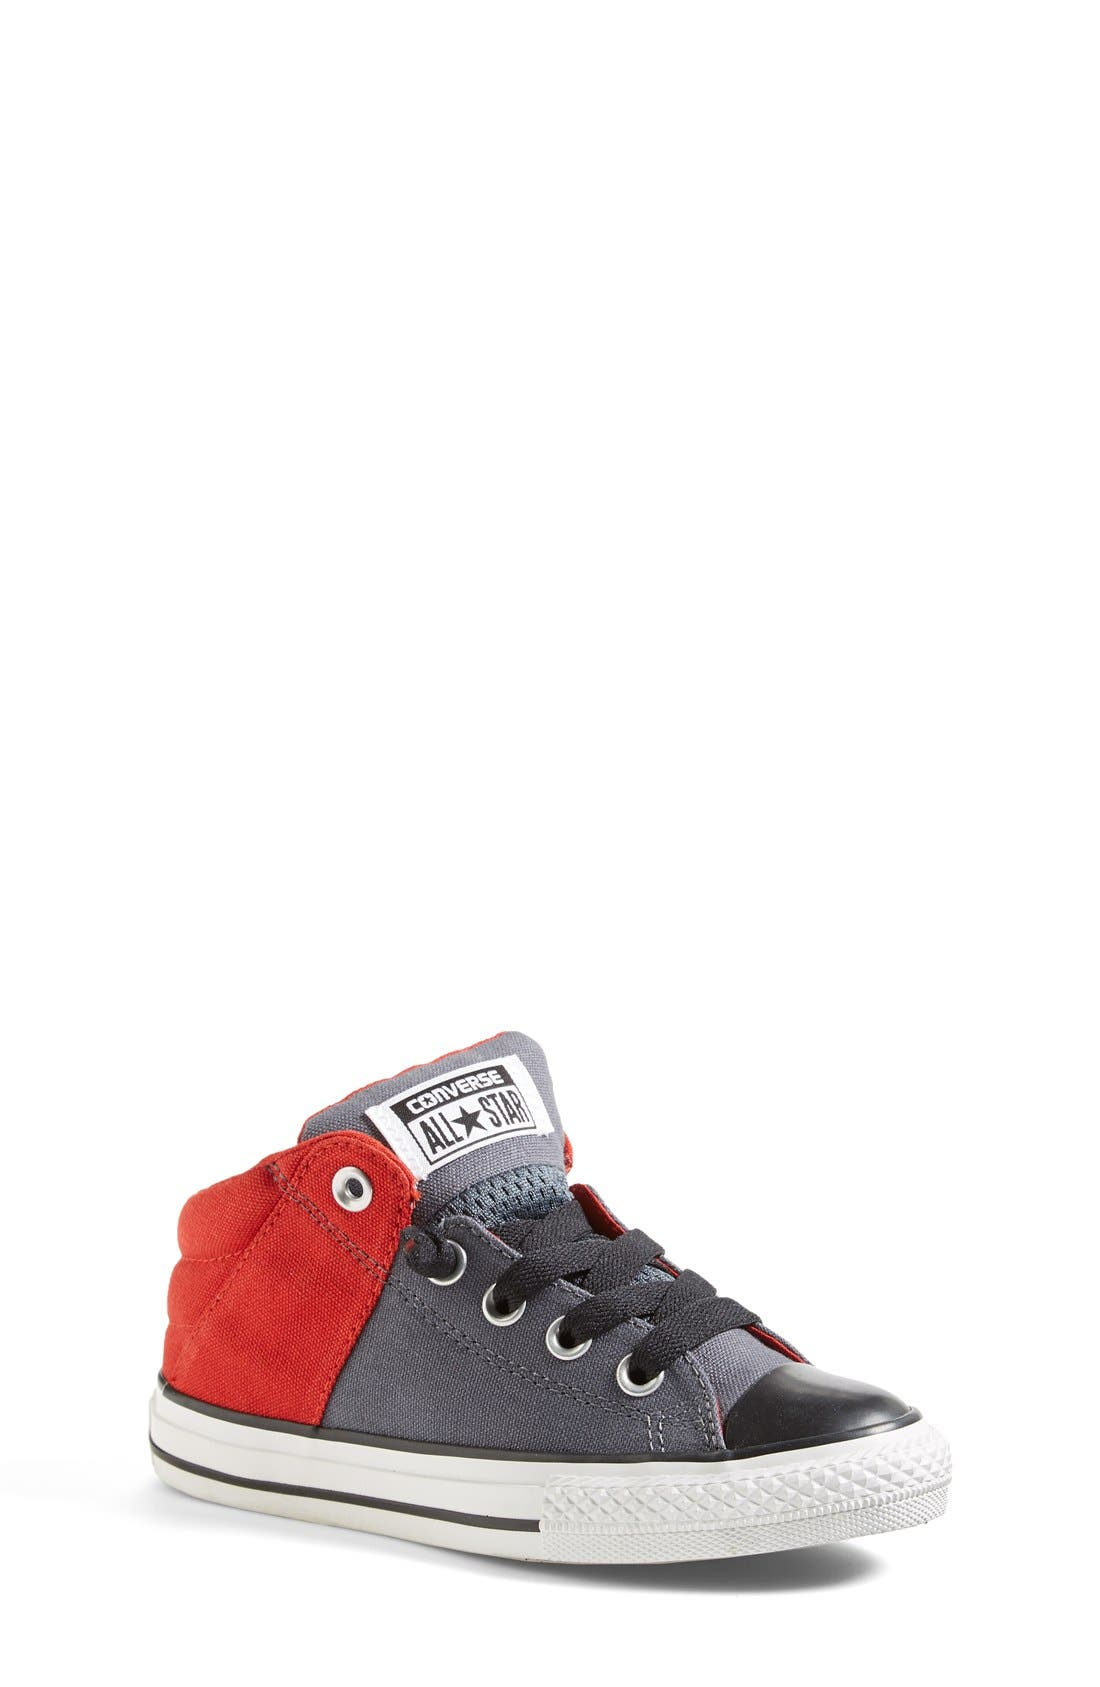 Alternate Image 1 Selected - Converse Chuck Taylor® All Star® 'Axel' Mid Top Sneaker (Toddler, Little Kid & Big Kid)